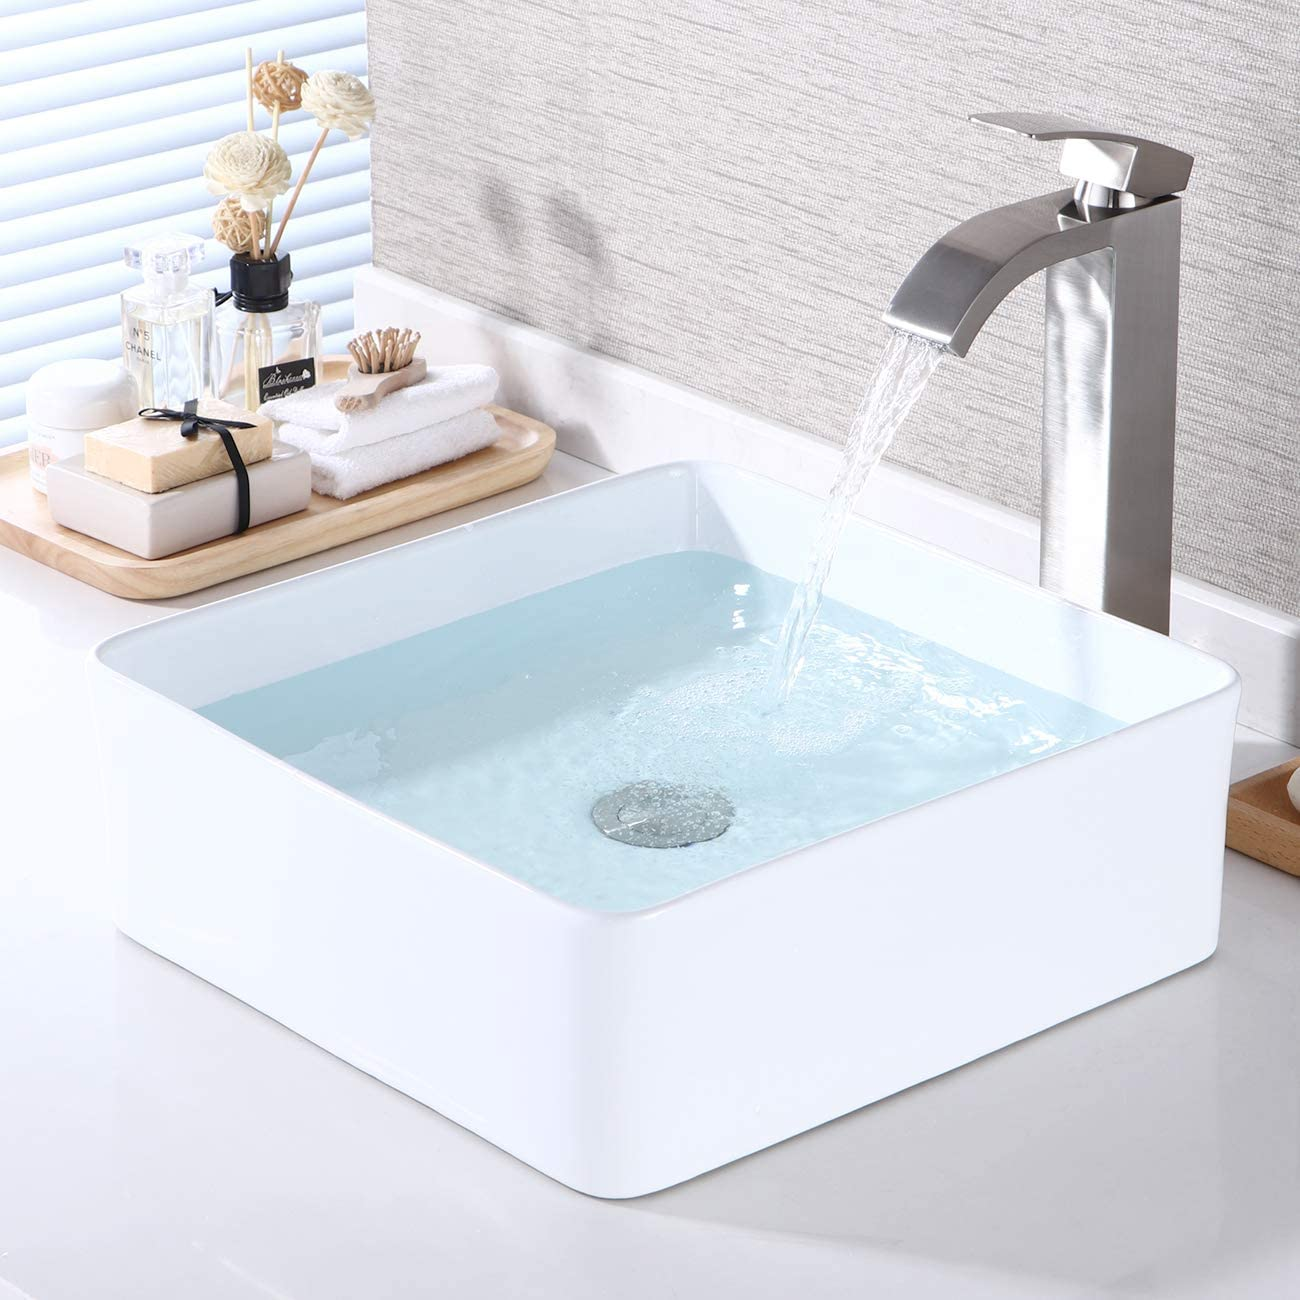 KES Bathroom Vessel Sink 14 Inch Above Counter Square White Ceramic Countertop Sink for Cabinet Lavatory Vanity, BVS122